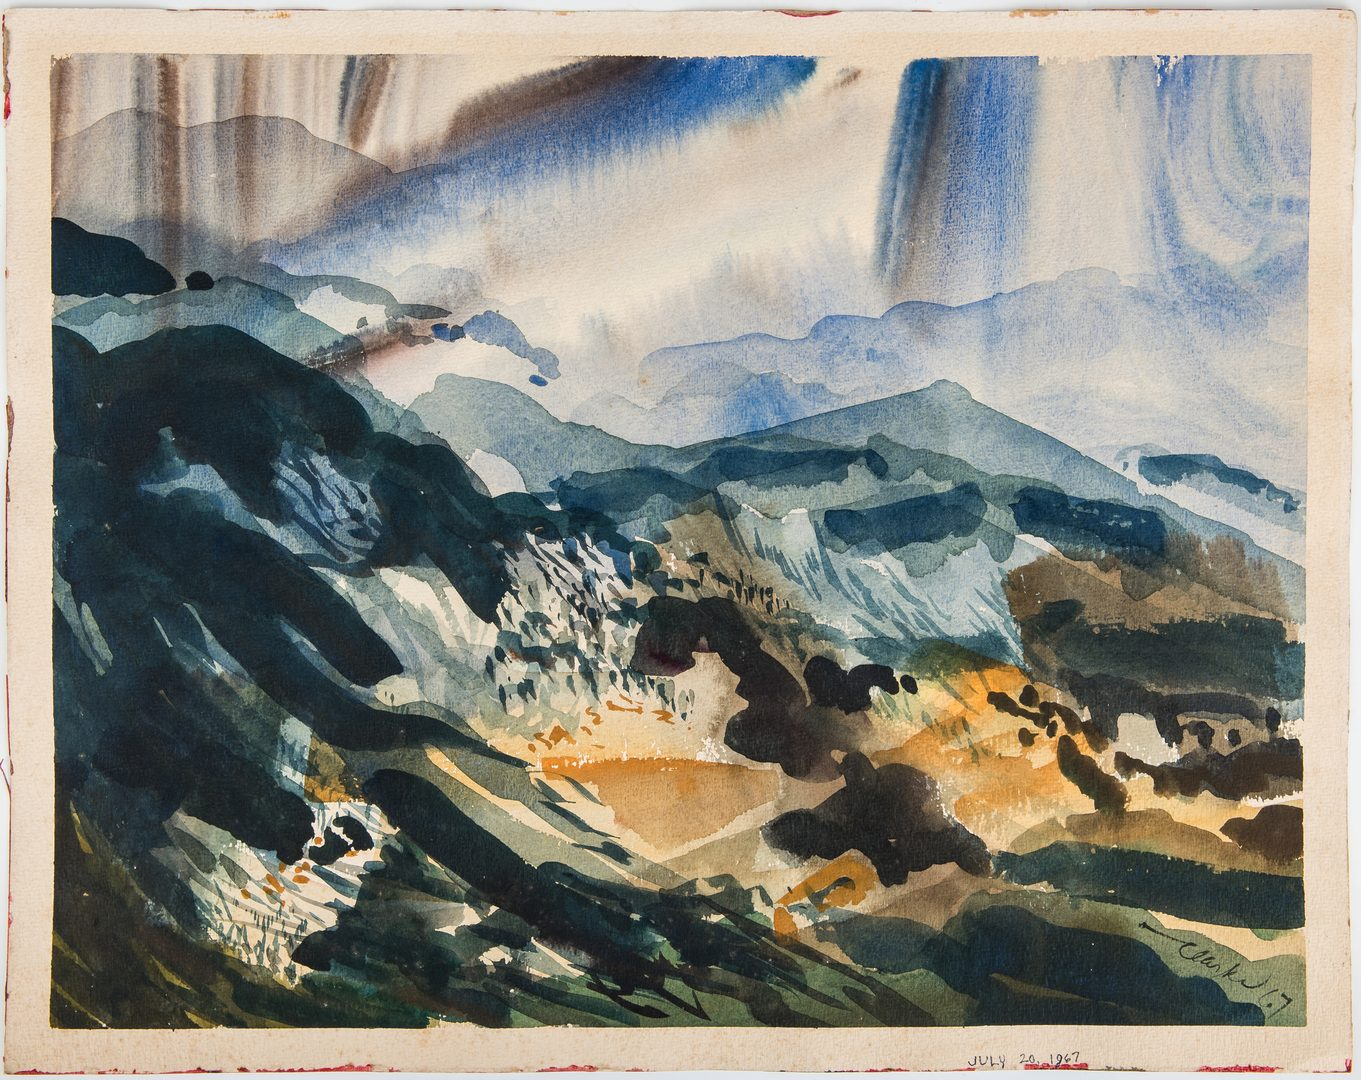 Lot 572: 2 Richard Clarke Abstract TN Landscape Watercolors